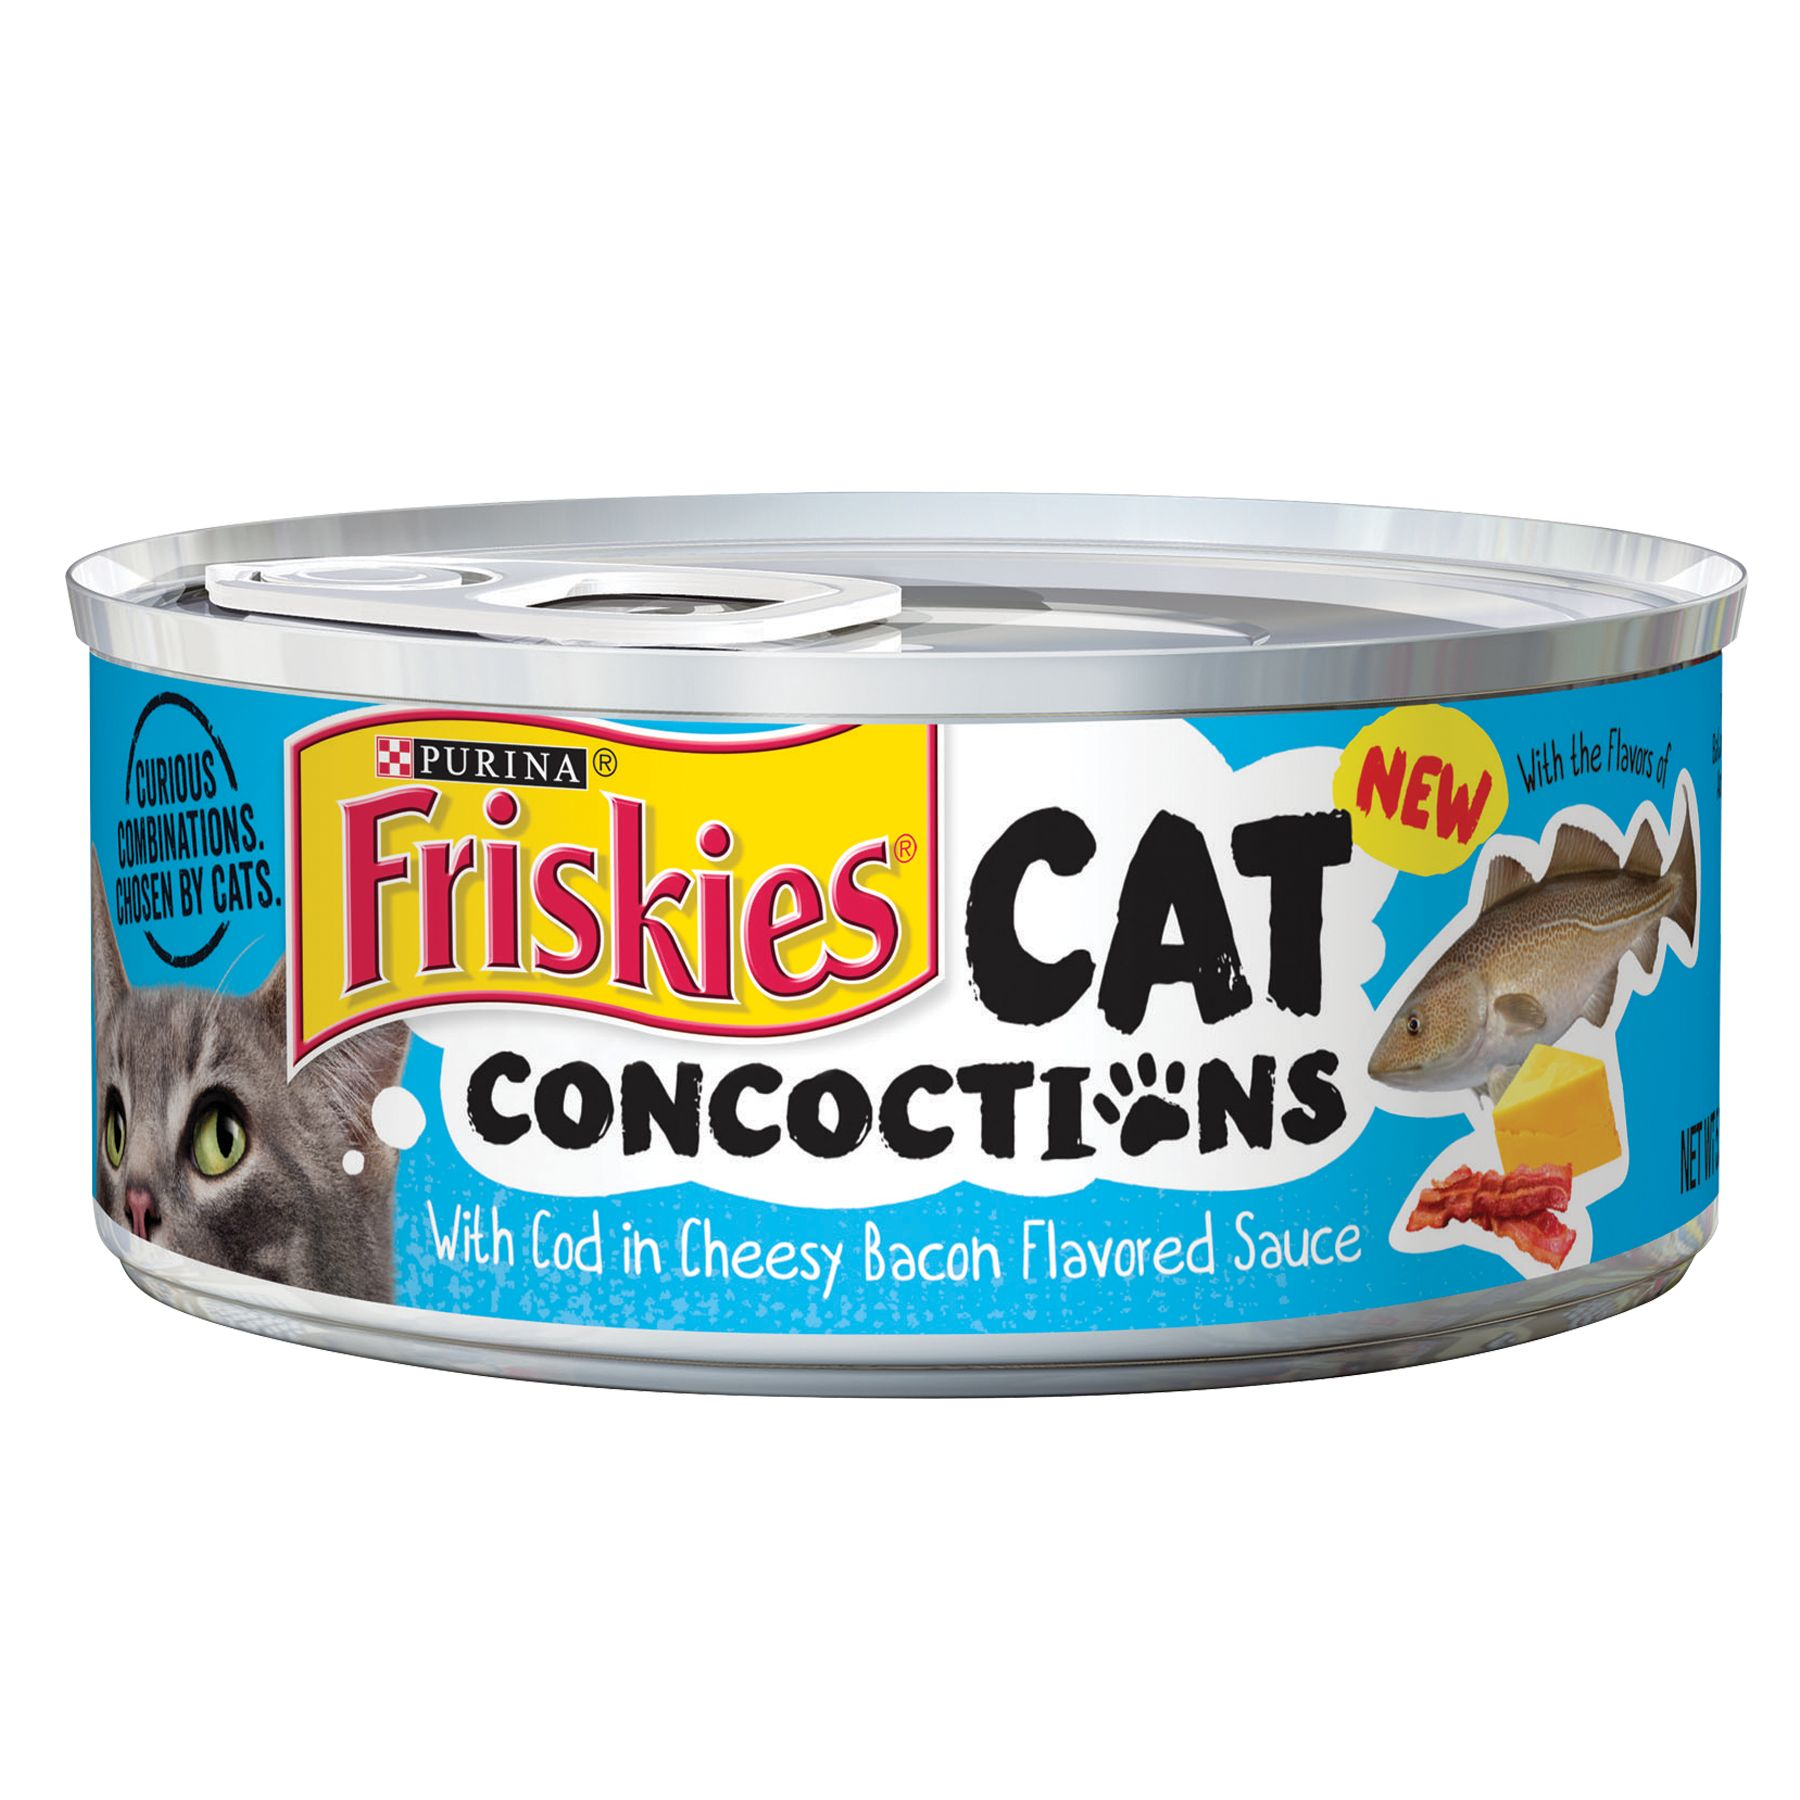 Purina® Friskies® Cat Concoctions Cat Food - Cod in Cheesy Bacon Sauce size: 5.5 Oz 5246554